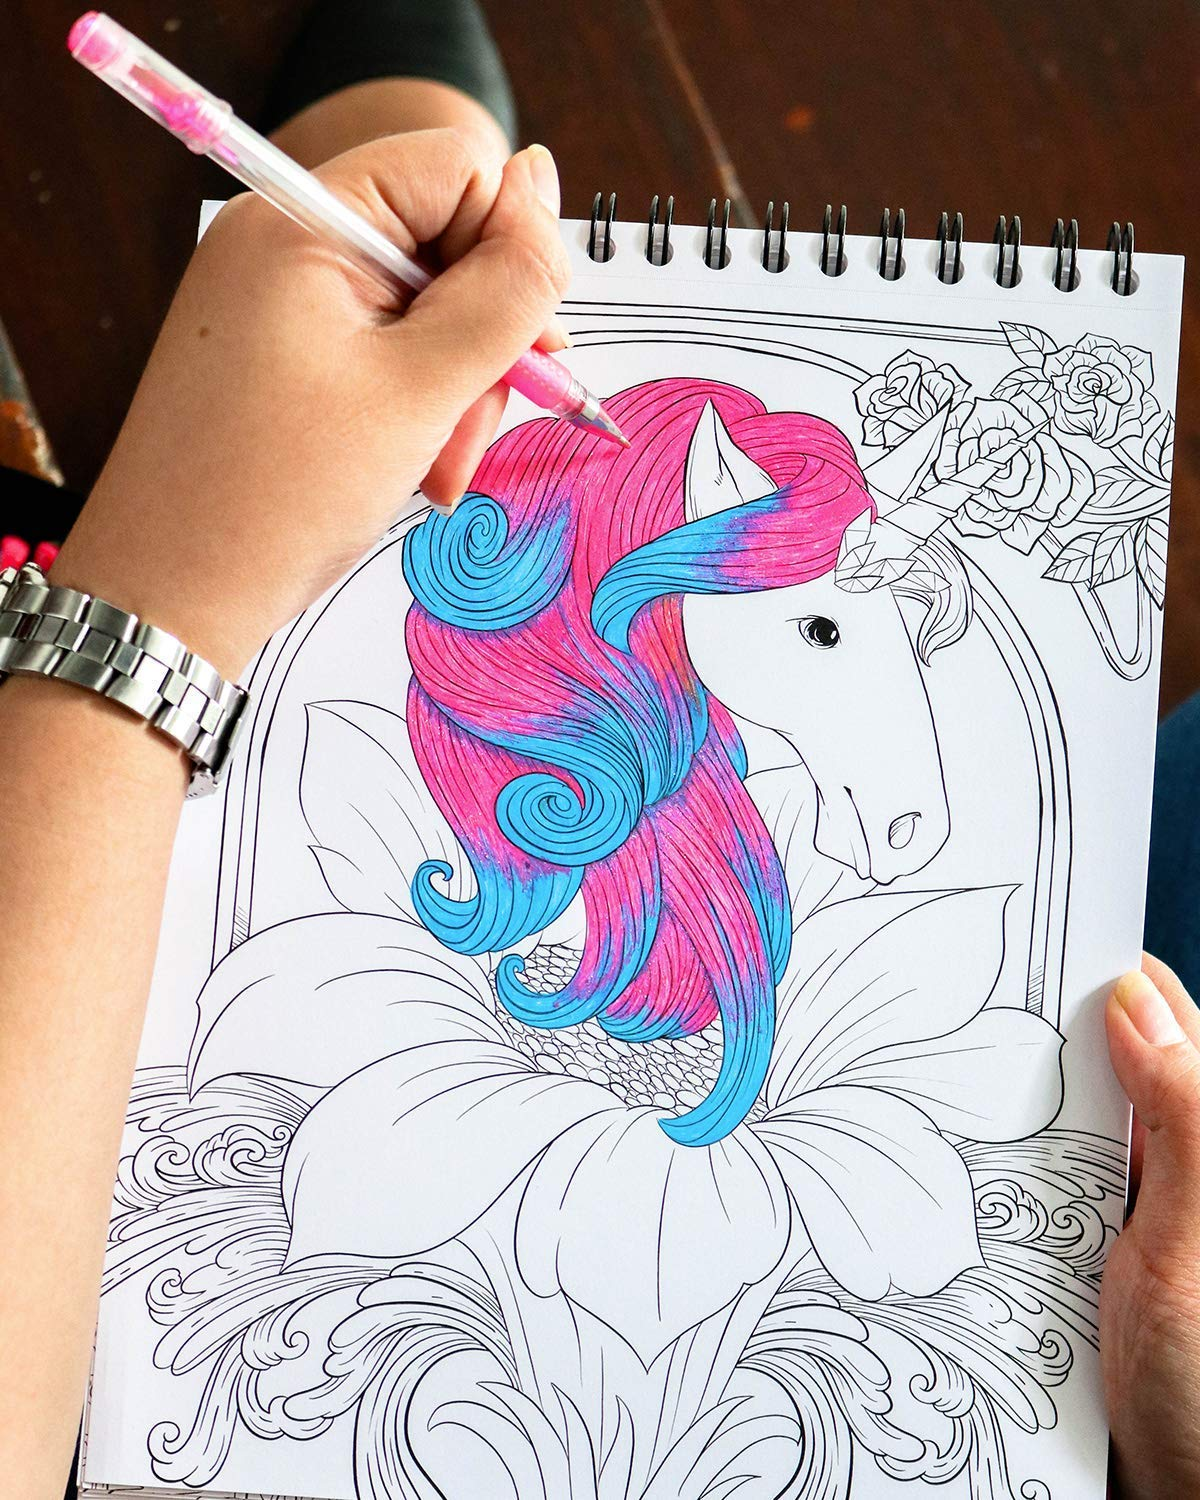 ColorIt Colorful Unicorns Adult Coloring Book - 50 Single-Sided Pages, Thick Smooth Paper, Lay Flat Hardback Covers… 8